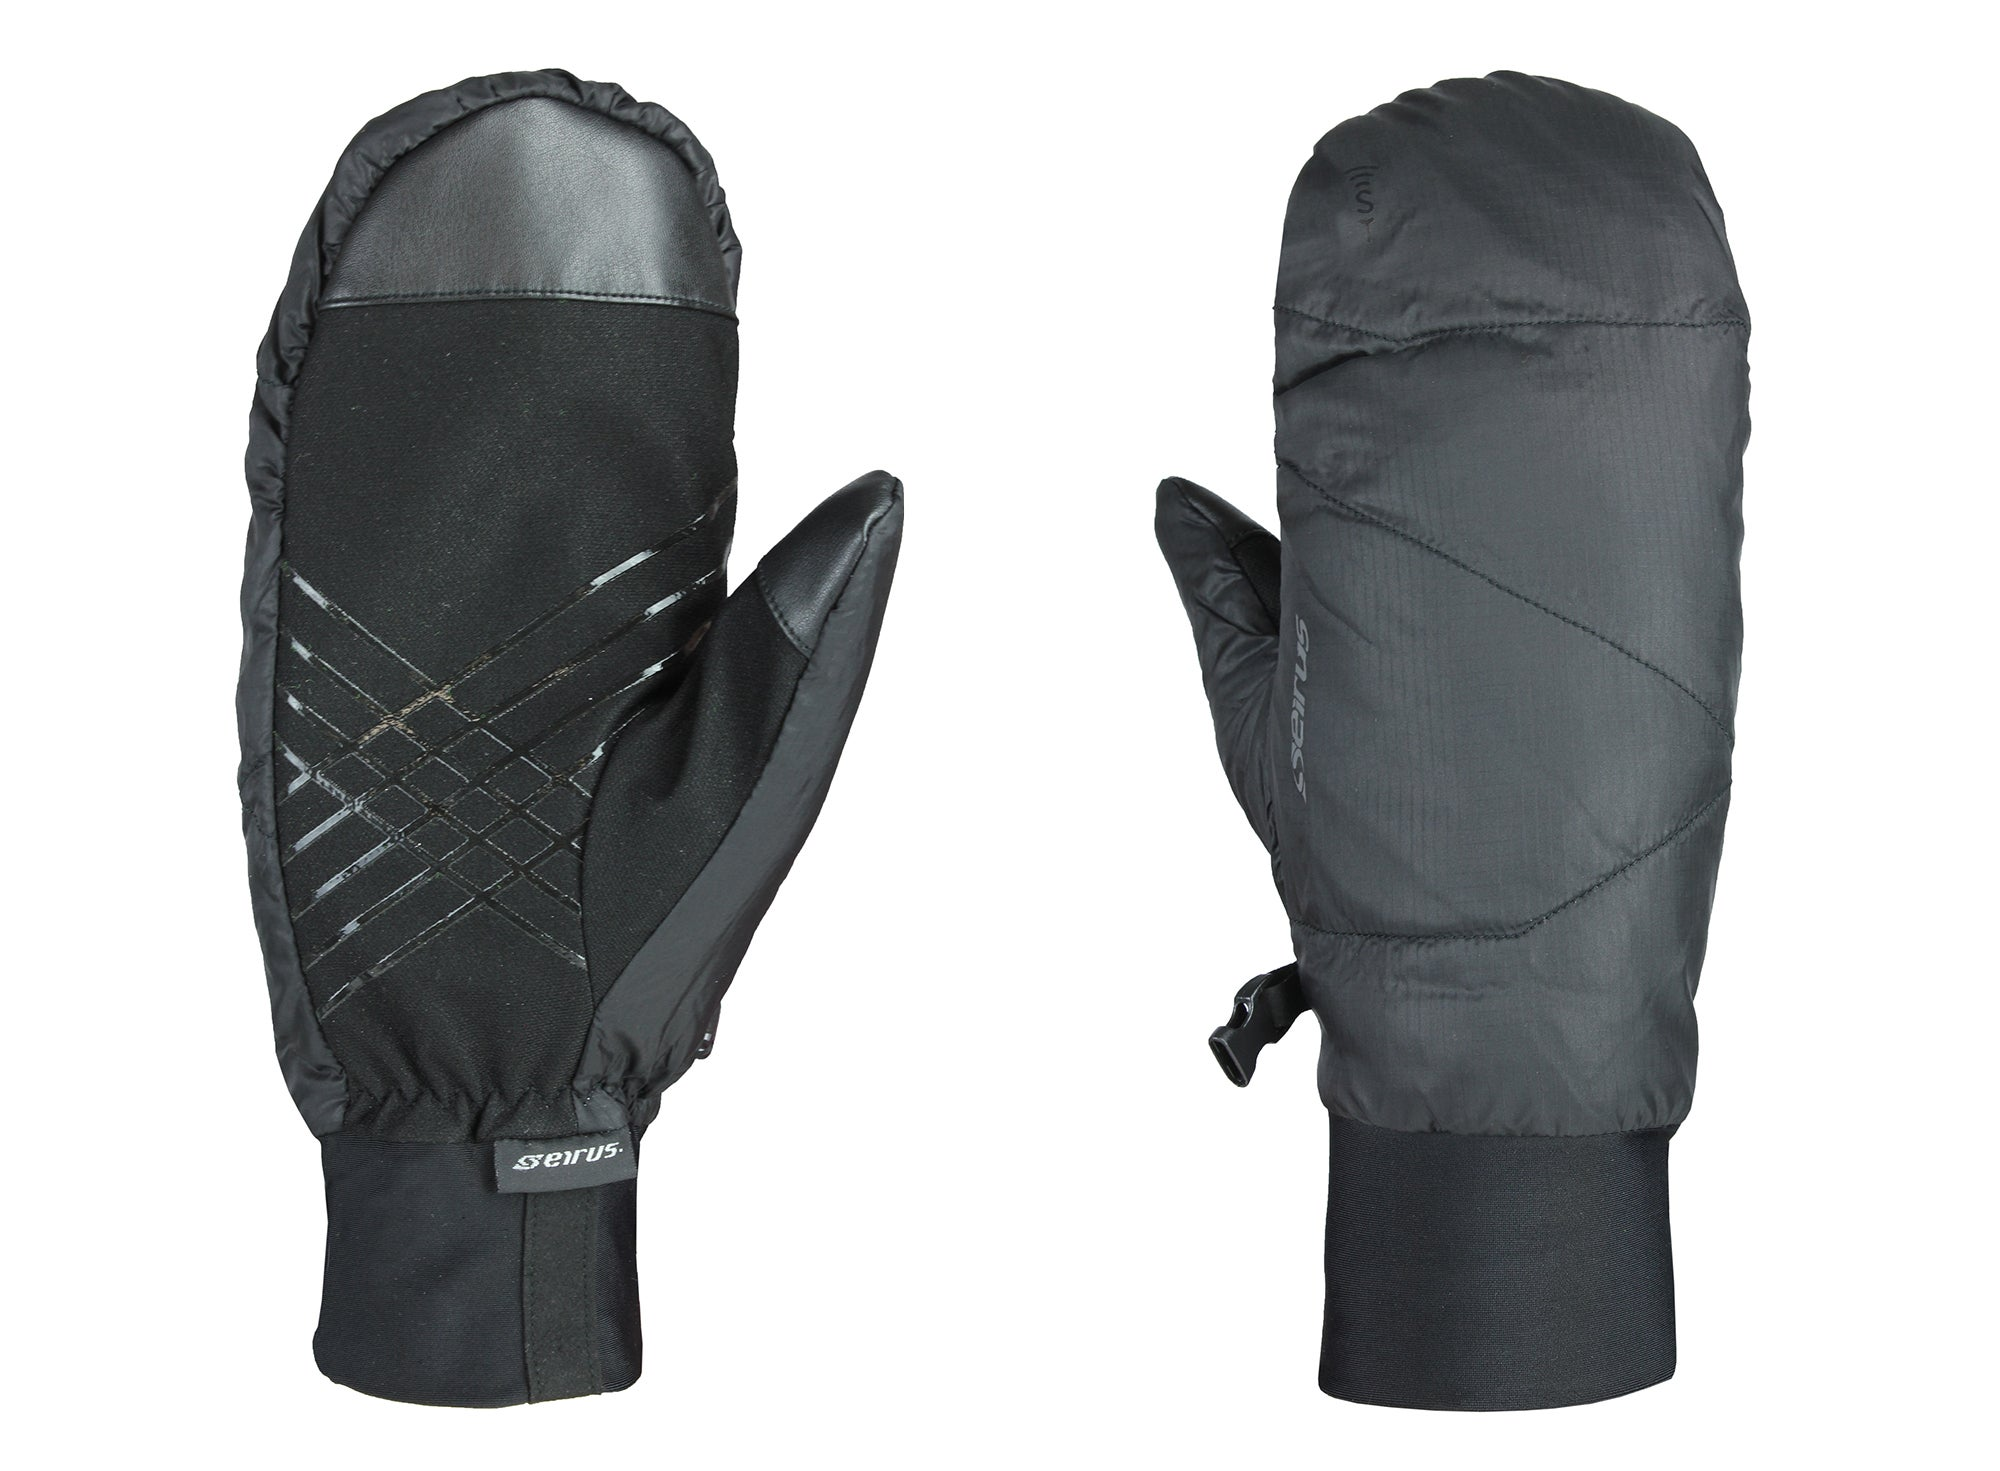 winter warm running gloves SoundTouch Solarsphere Ace Mitt